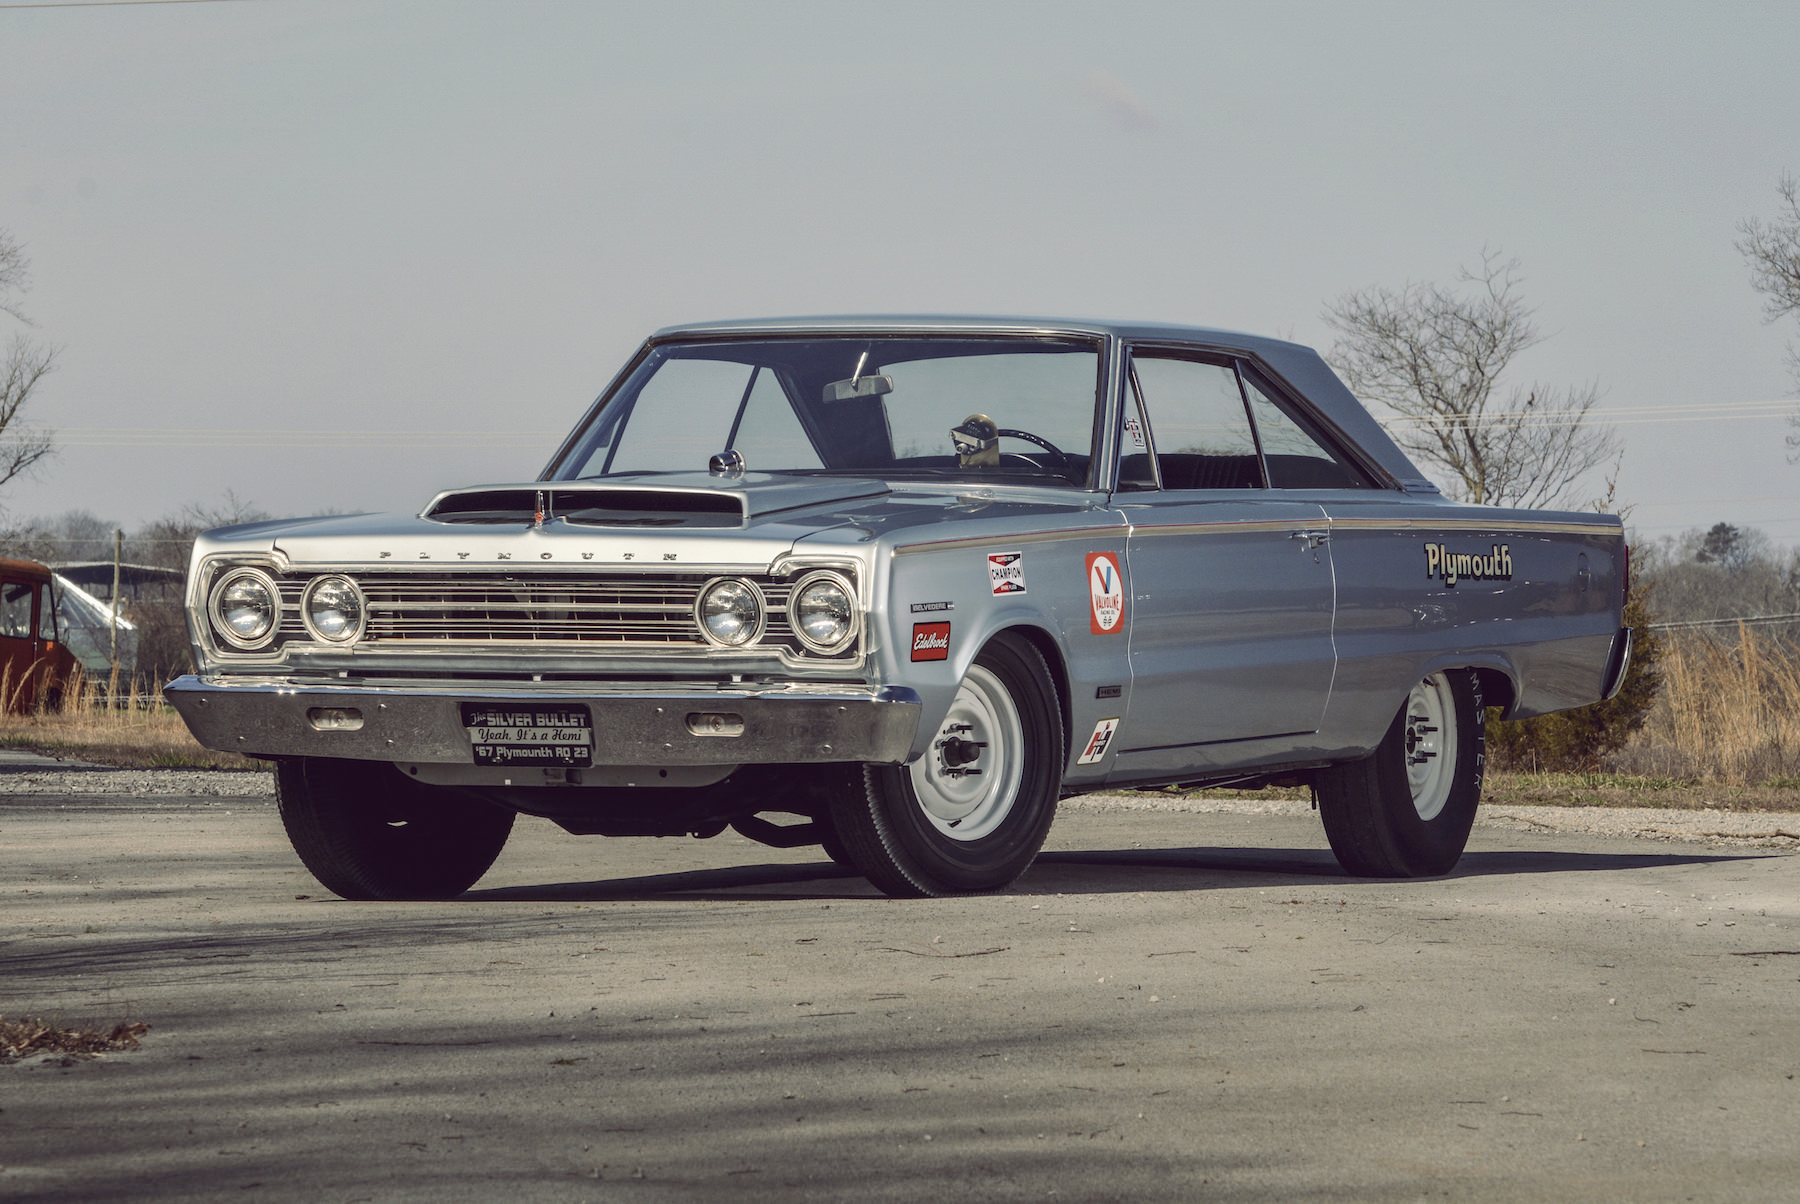 Plymouth Belvedere Ii furthermore Plymouth Road Runner Pic in addition Plymouth Belvedere Muscle Cars For Sale X also For Sale Mercury Cougar Xr likewise Plymouth Sport Fury Muscle Cars Muscle Cars For Sale X X. on 1970 plymouth belvedere gtx